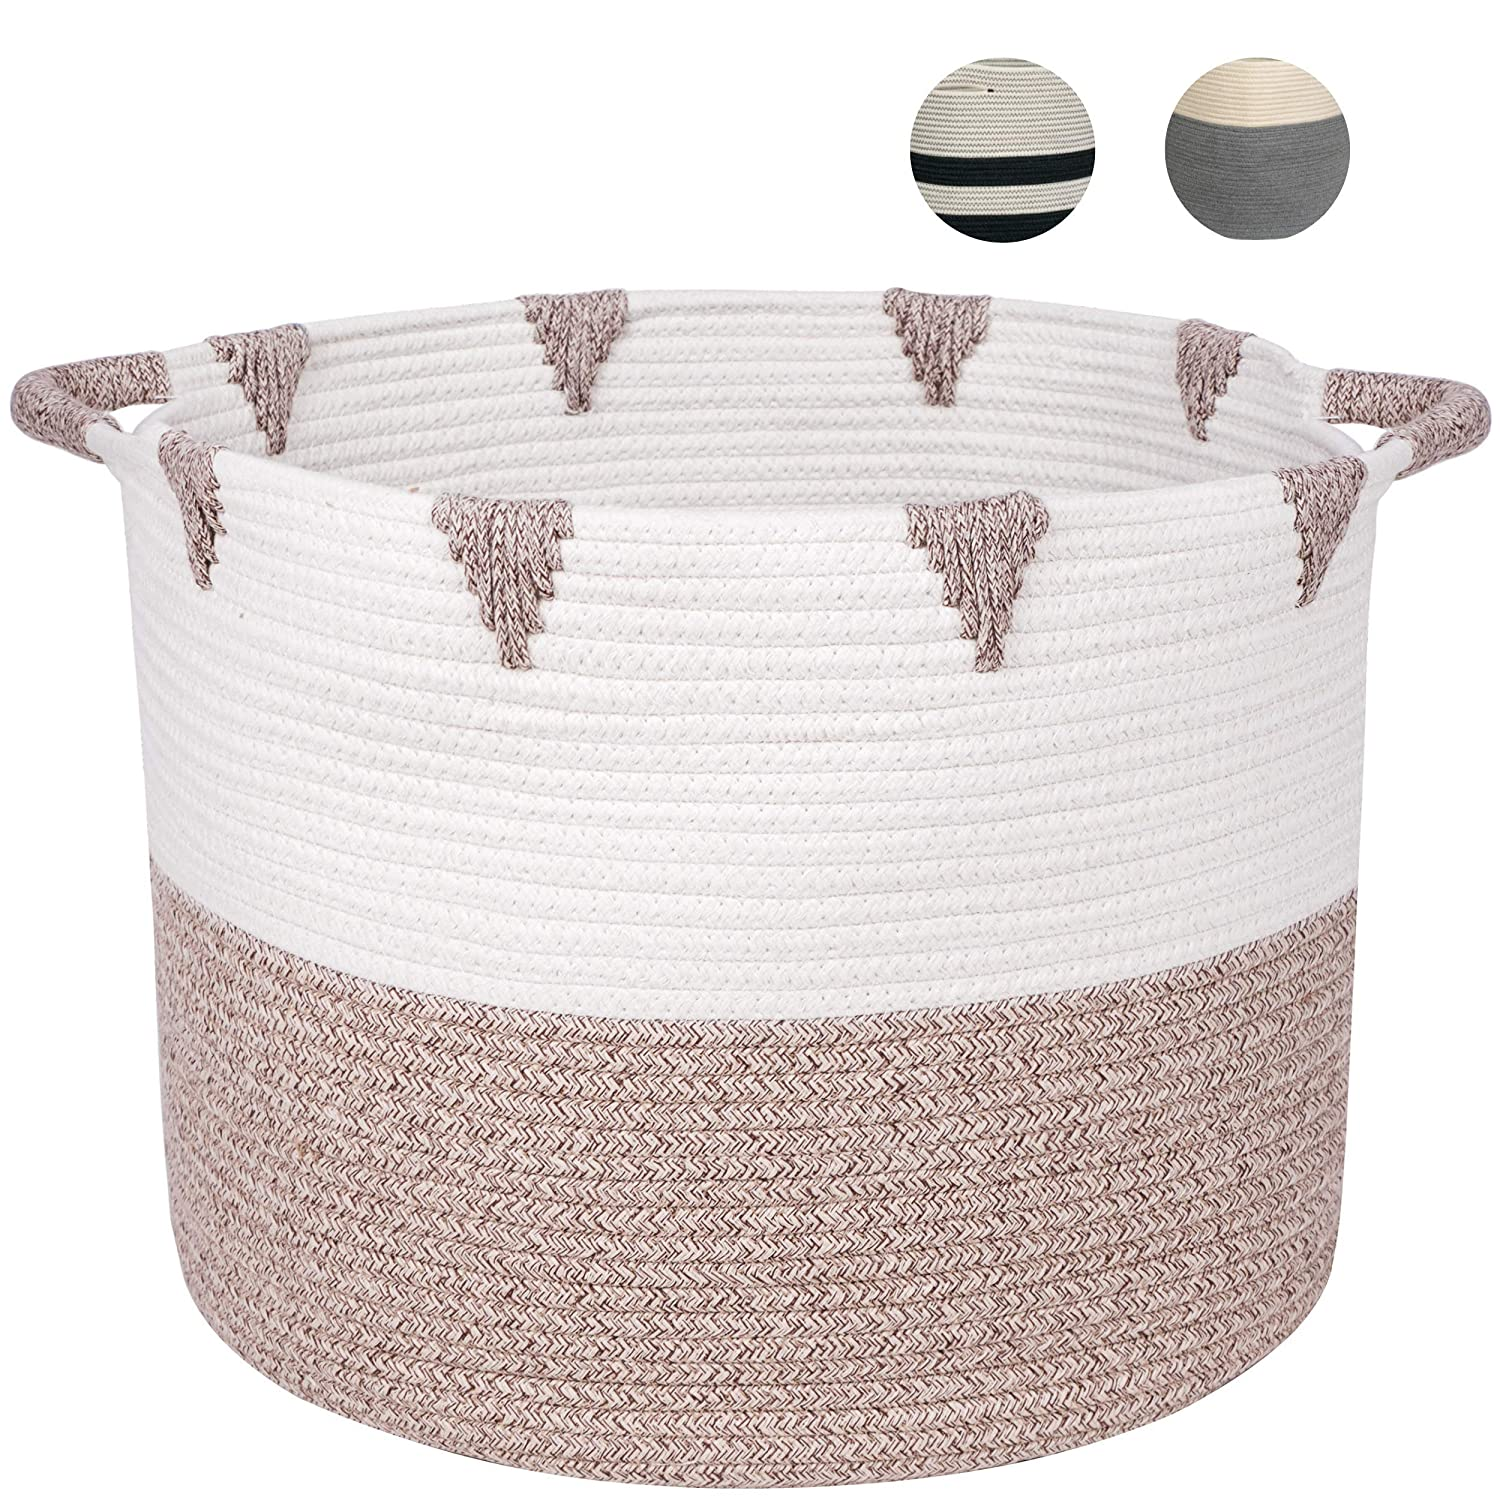 """Beautiful Large Woven Storage Basket - Made from Natural Cotton Rope 